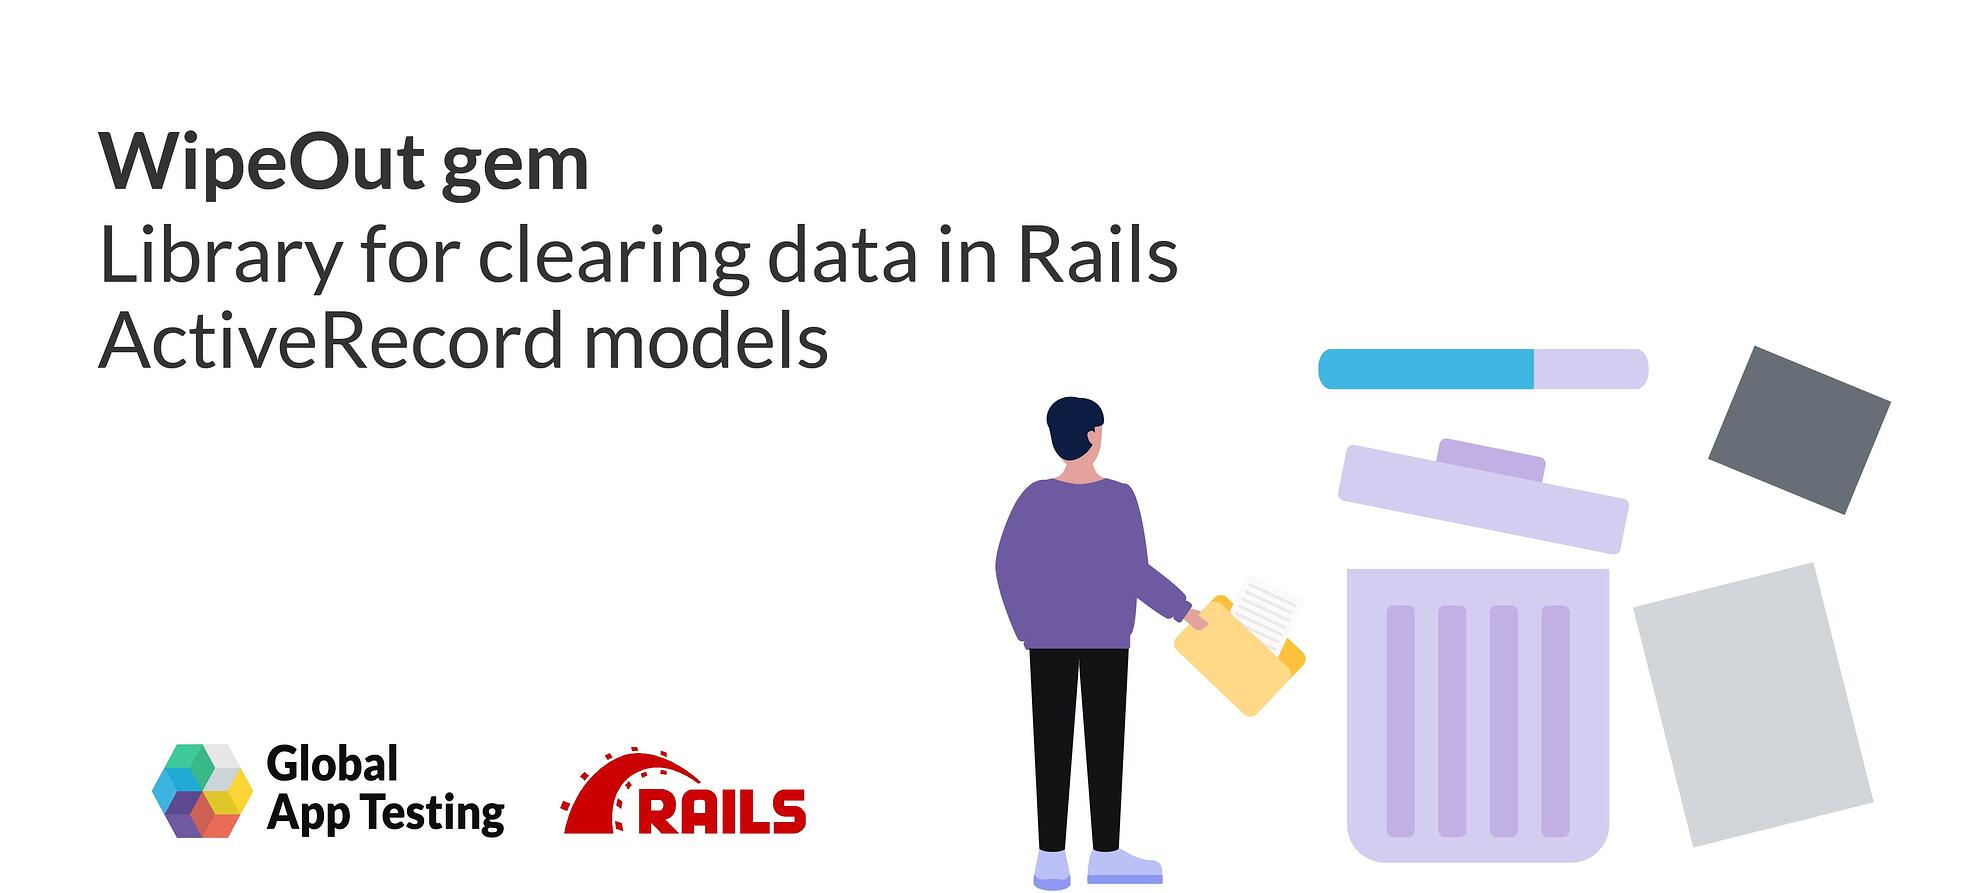 Library for removing and clearing data in Rails ActiveRecord models